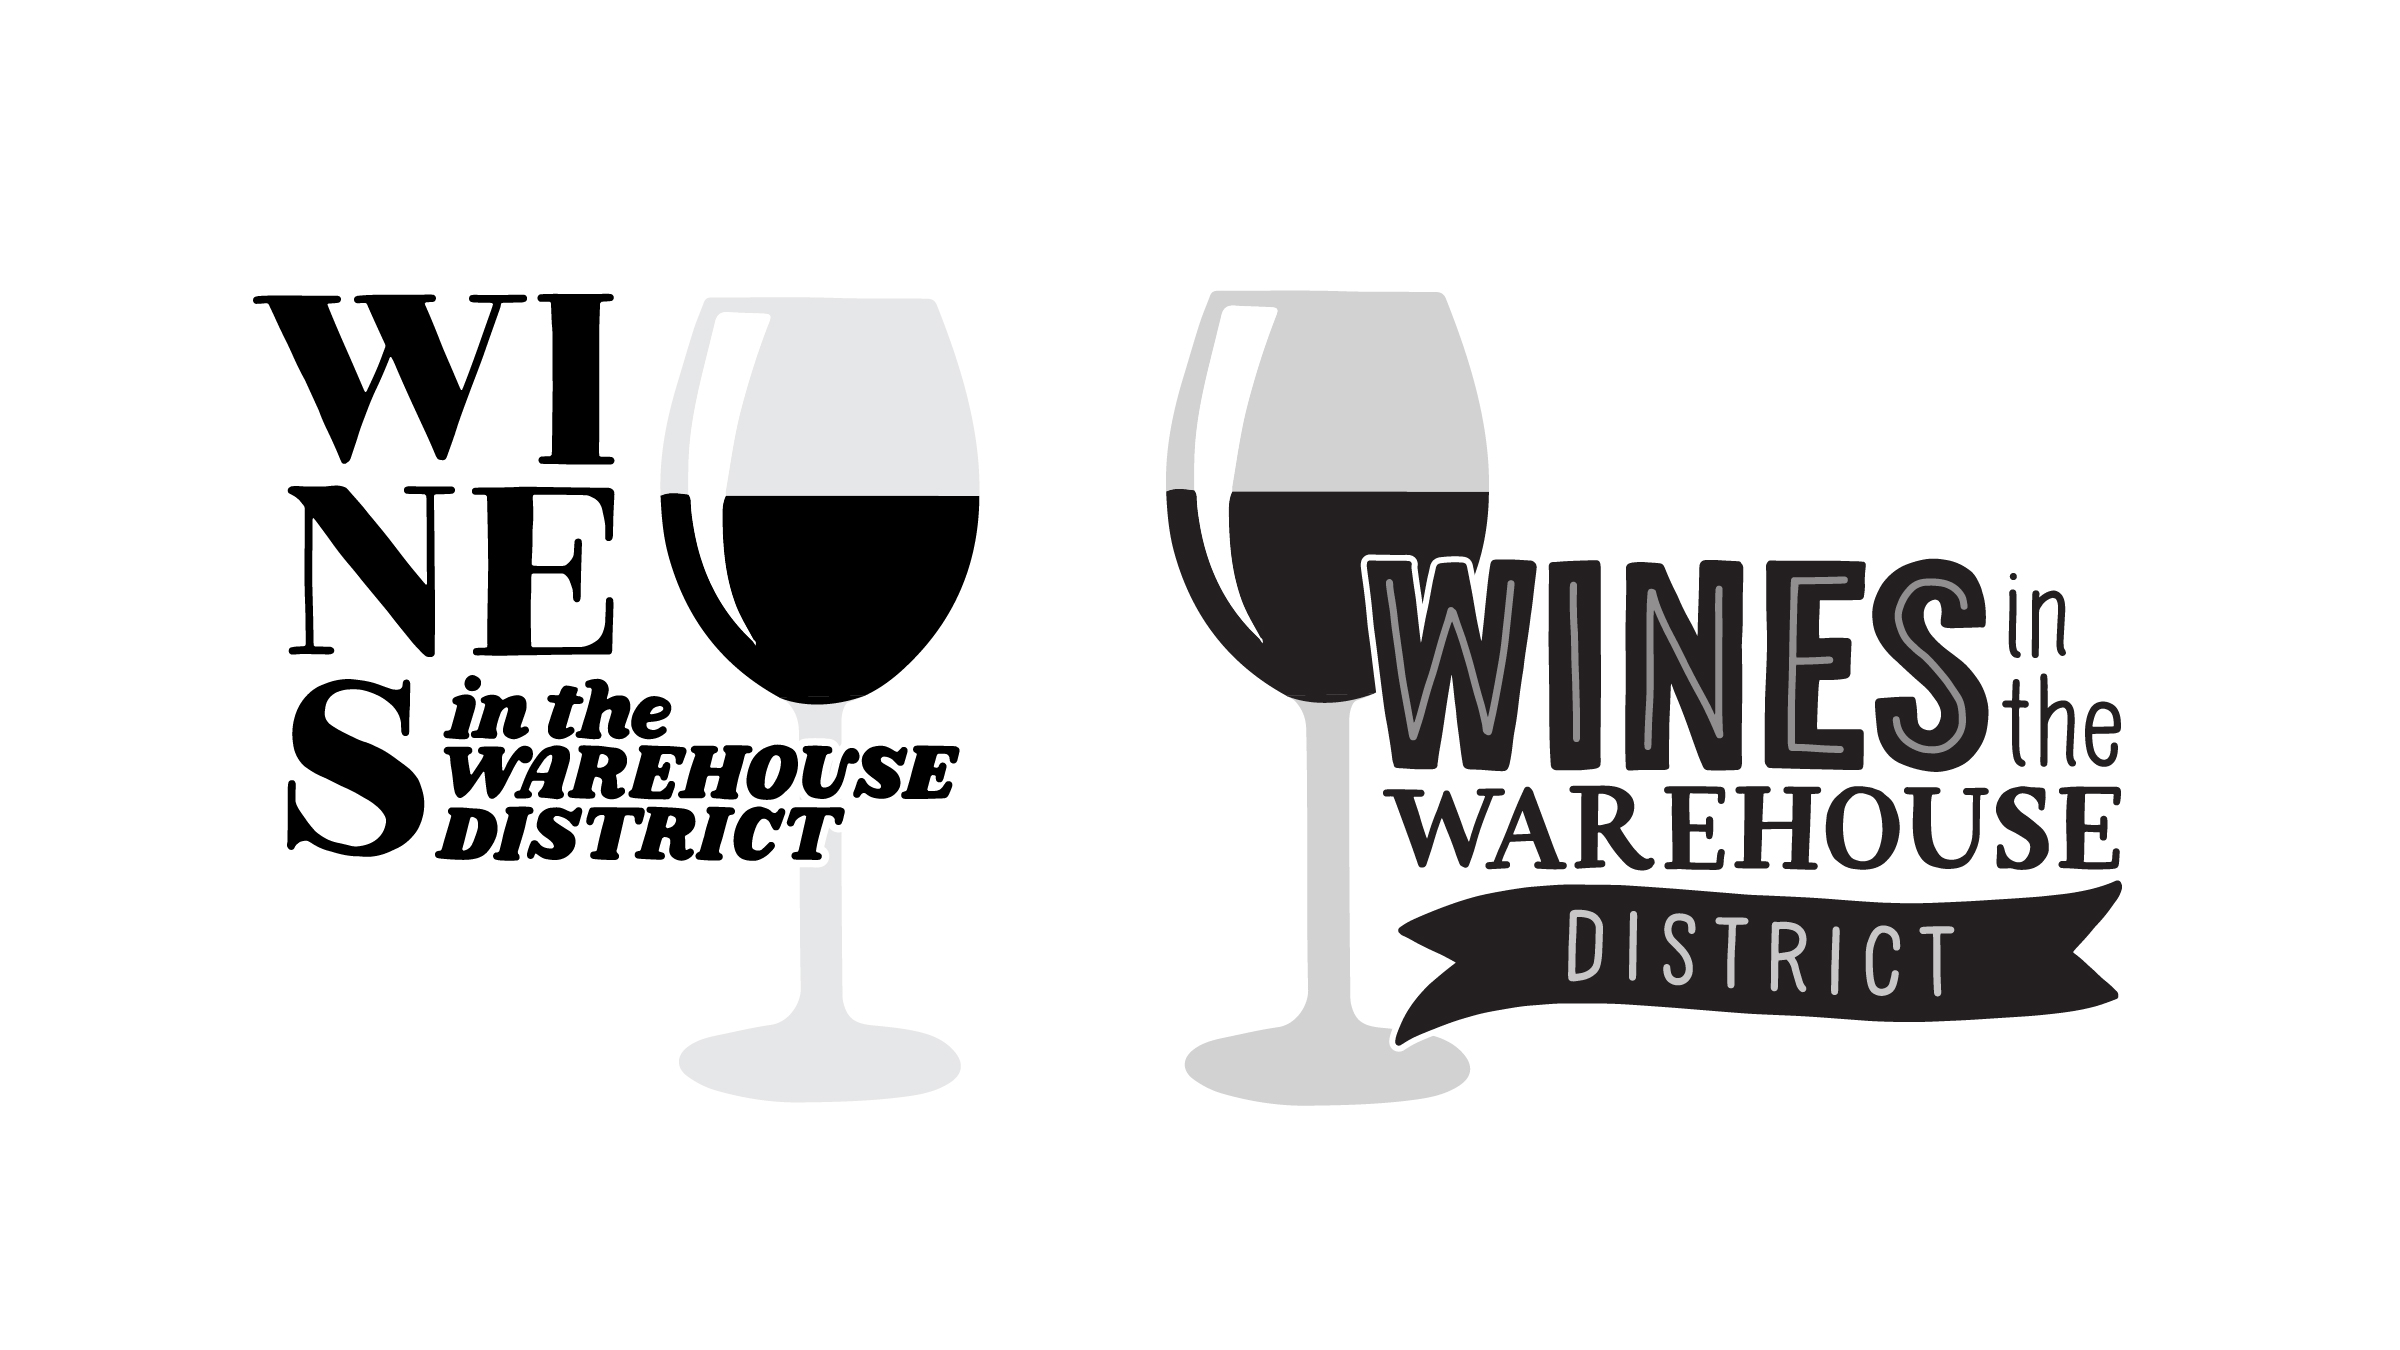 """Two initial design concepts for """"Wines in the Warehouse District"""""""